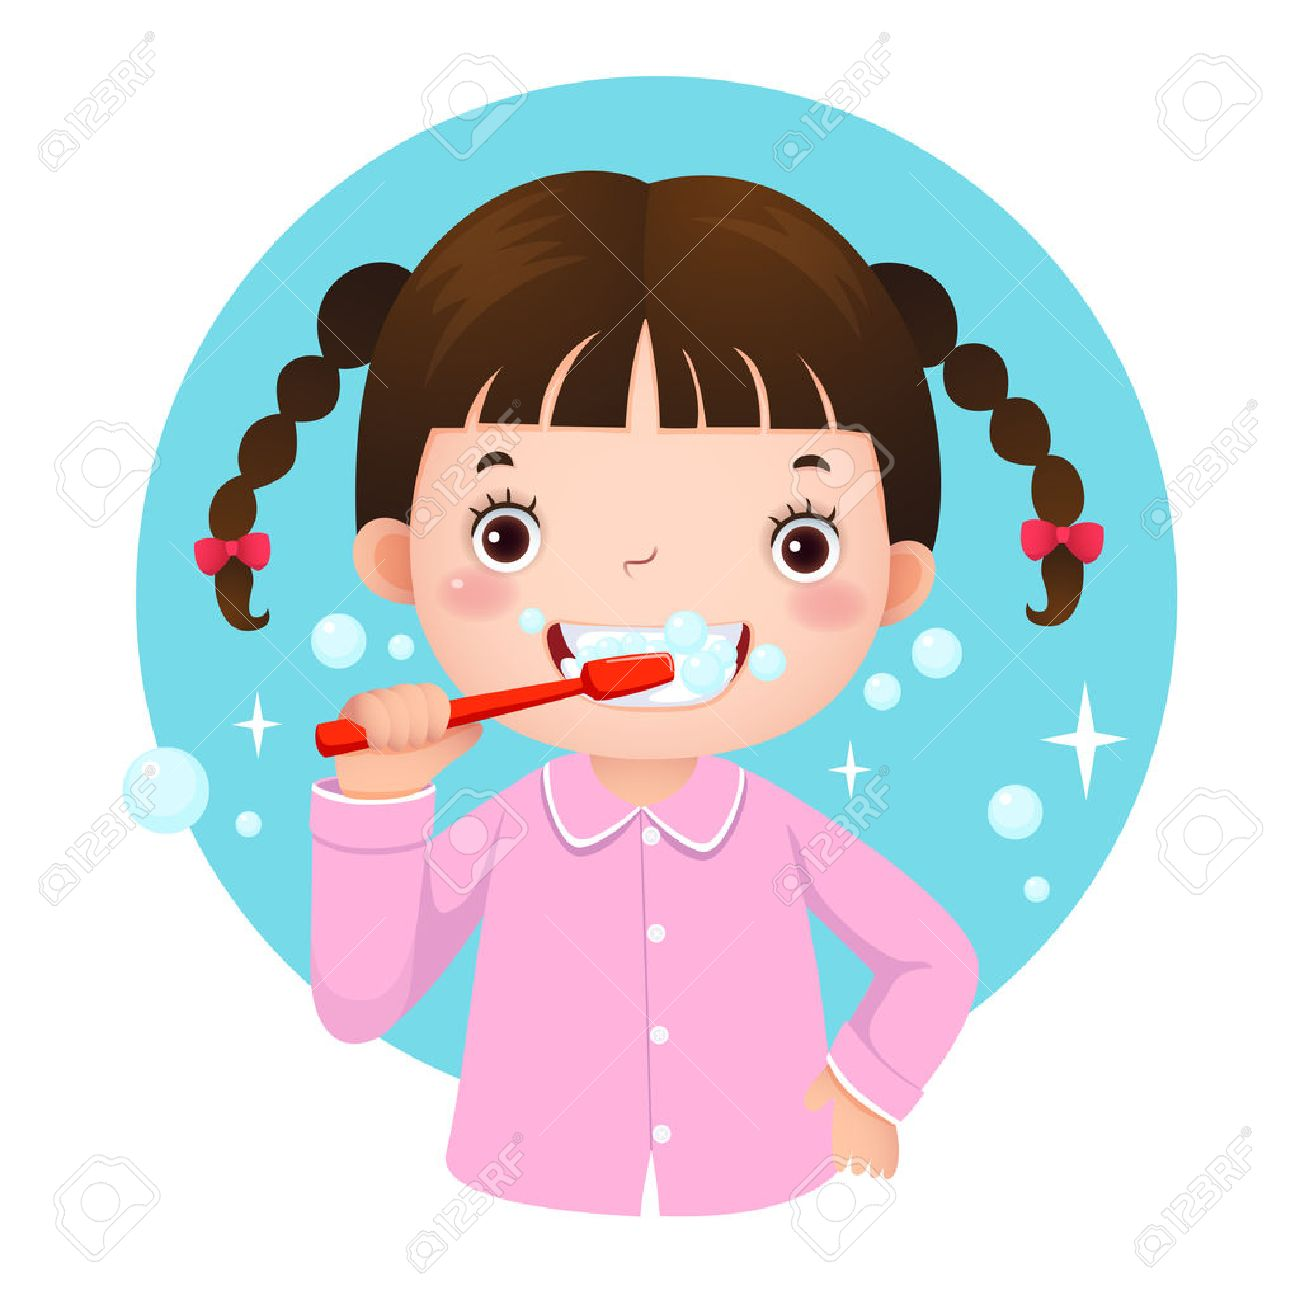 Girl brush teeth clipart 4 » Clipart Station.